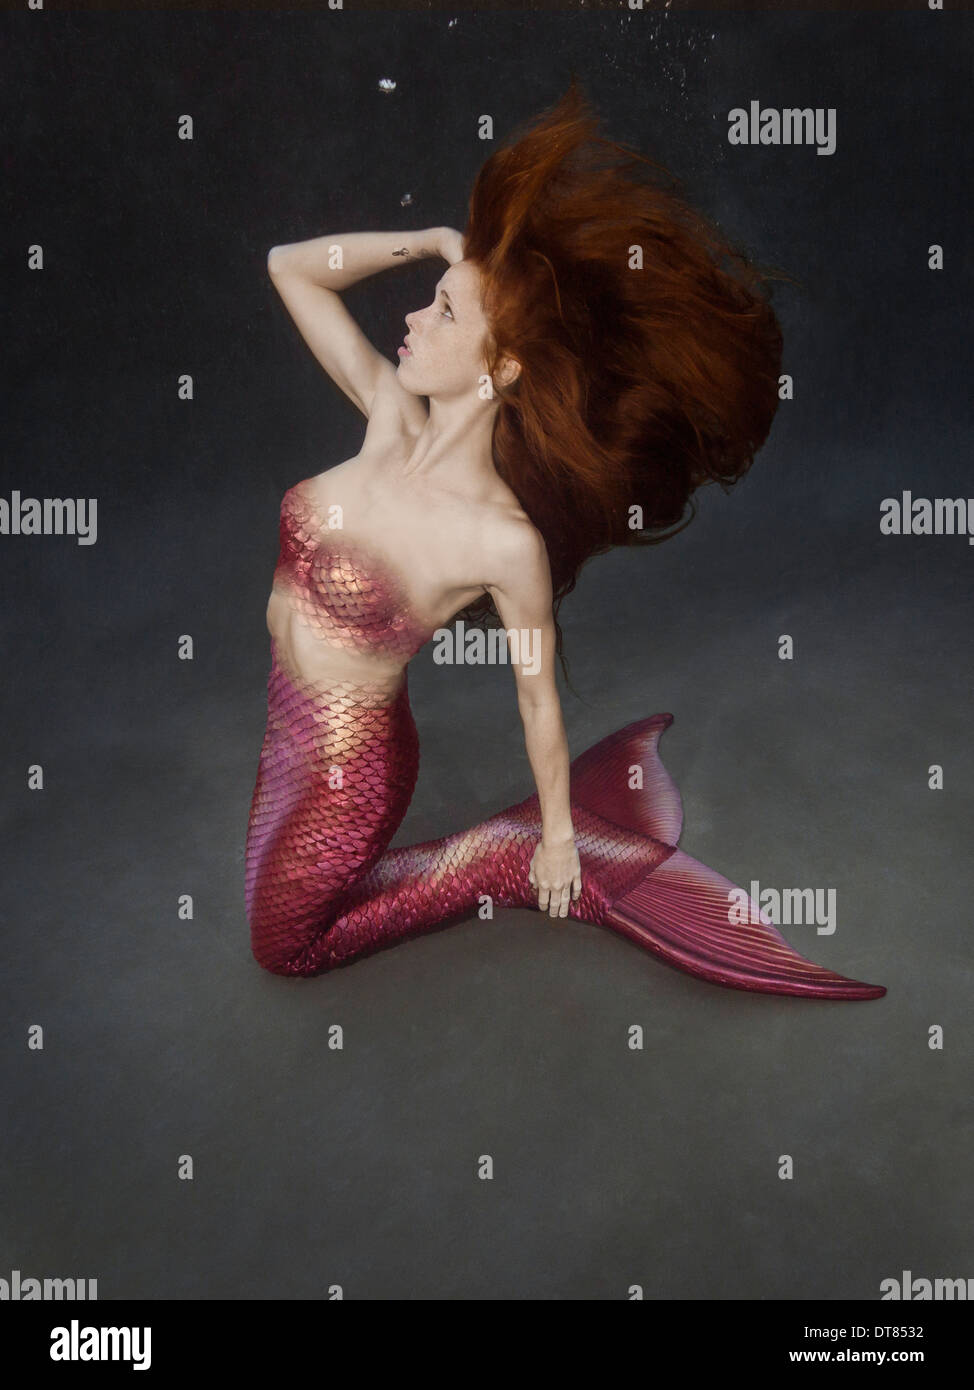 Redhead mermaid underwater in a pool in Virginia Beach, Virginia - Stock  Image